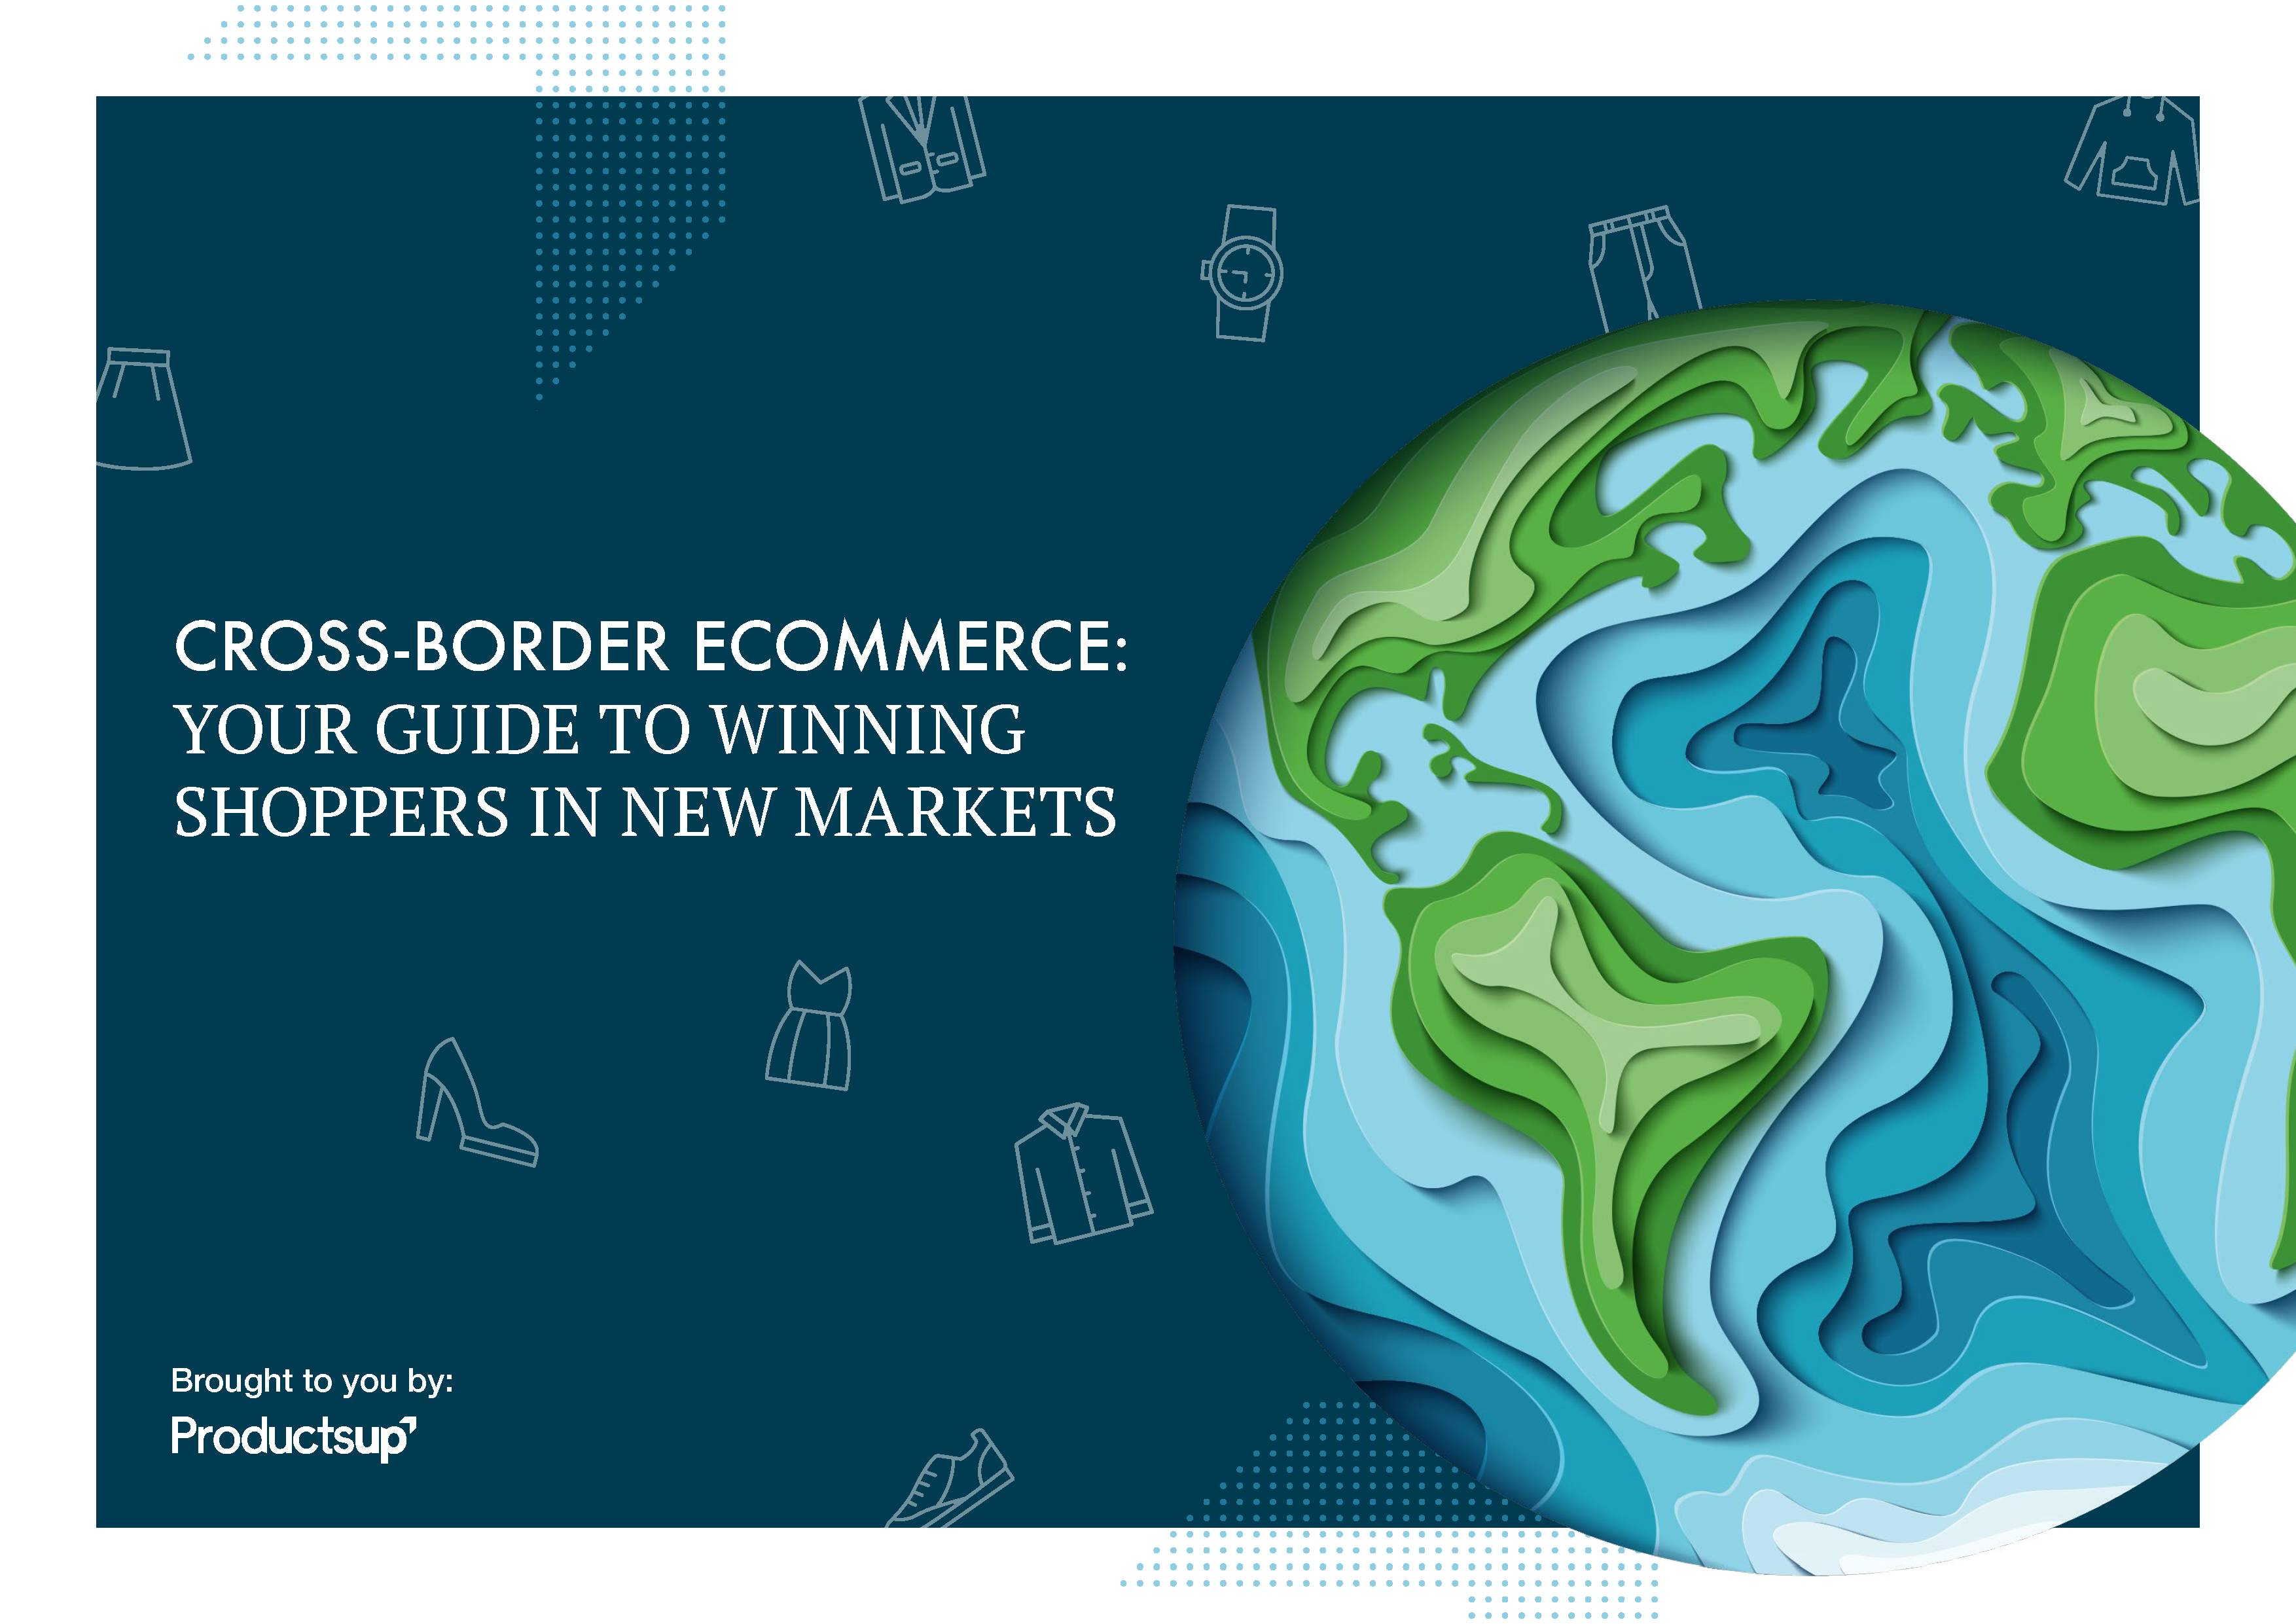 Cross-border ecommerce: Your guide to winning shoppers in new markets